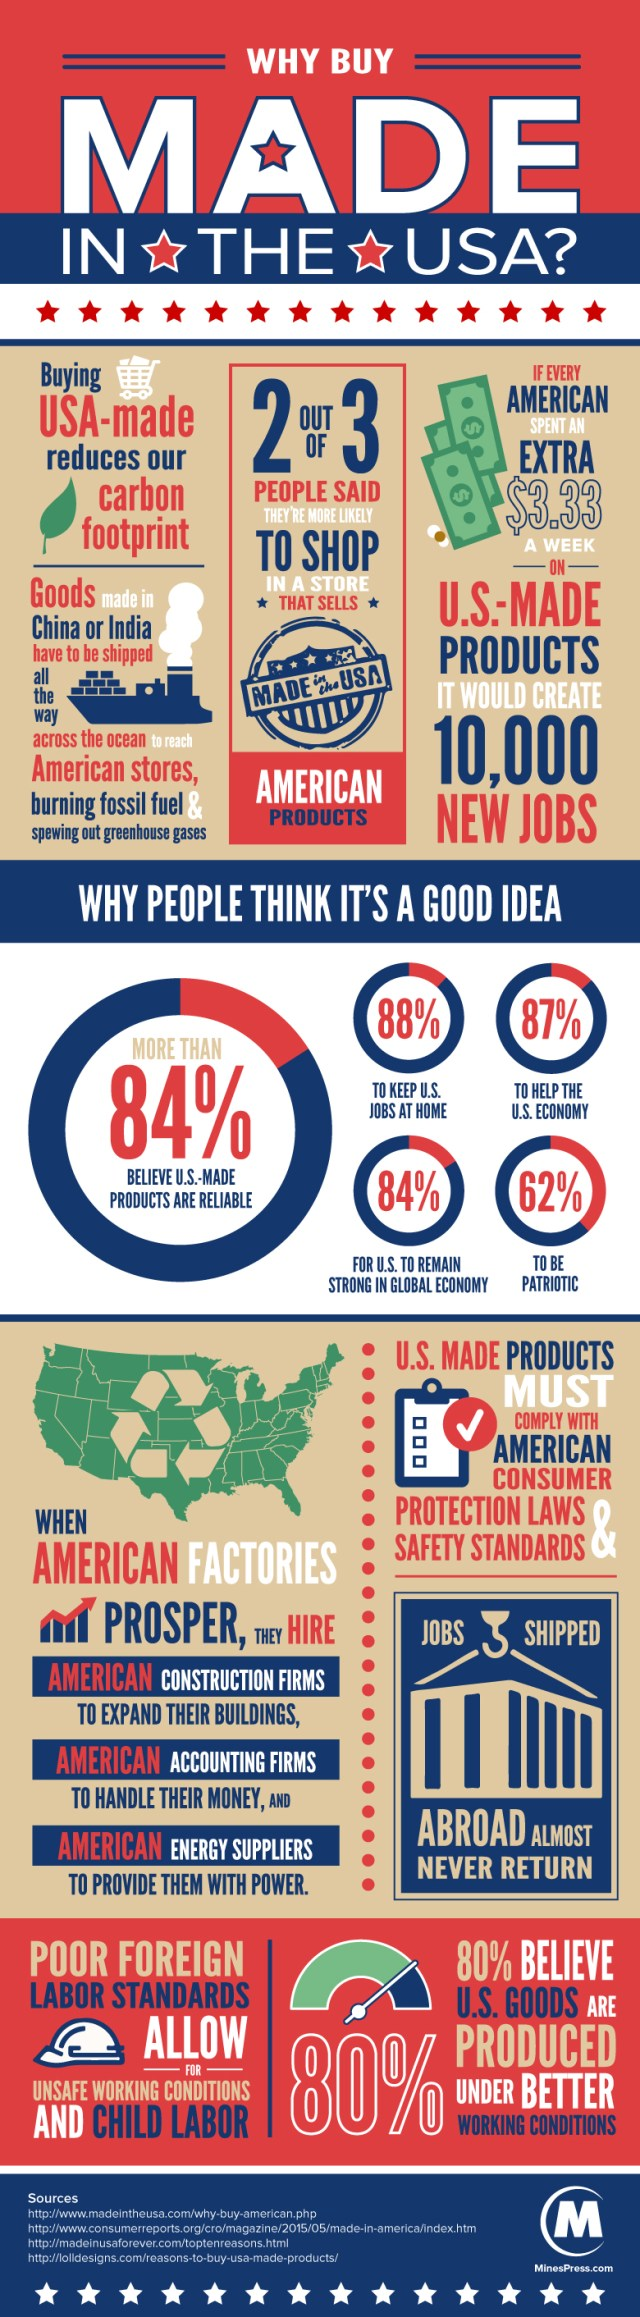 why-buy-made-in-the-usa-infographic